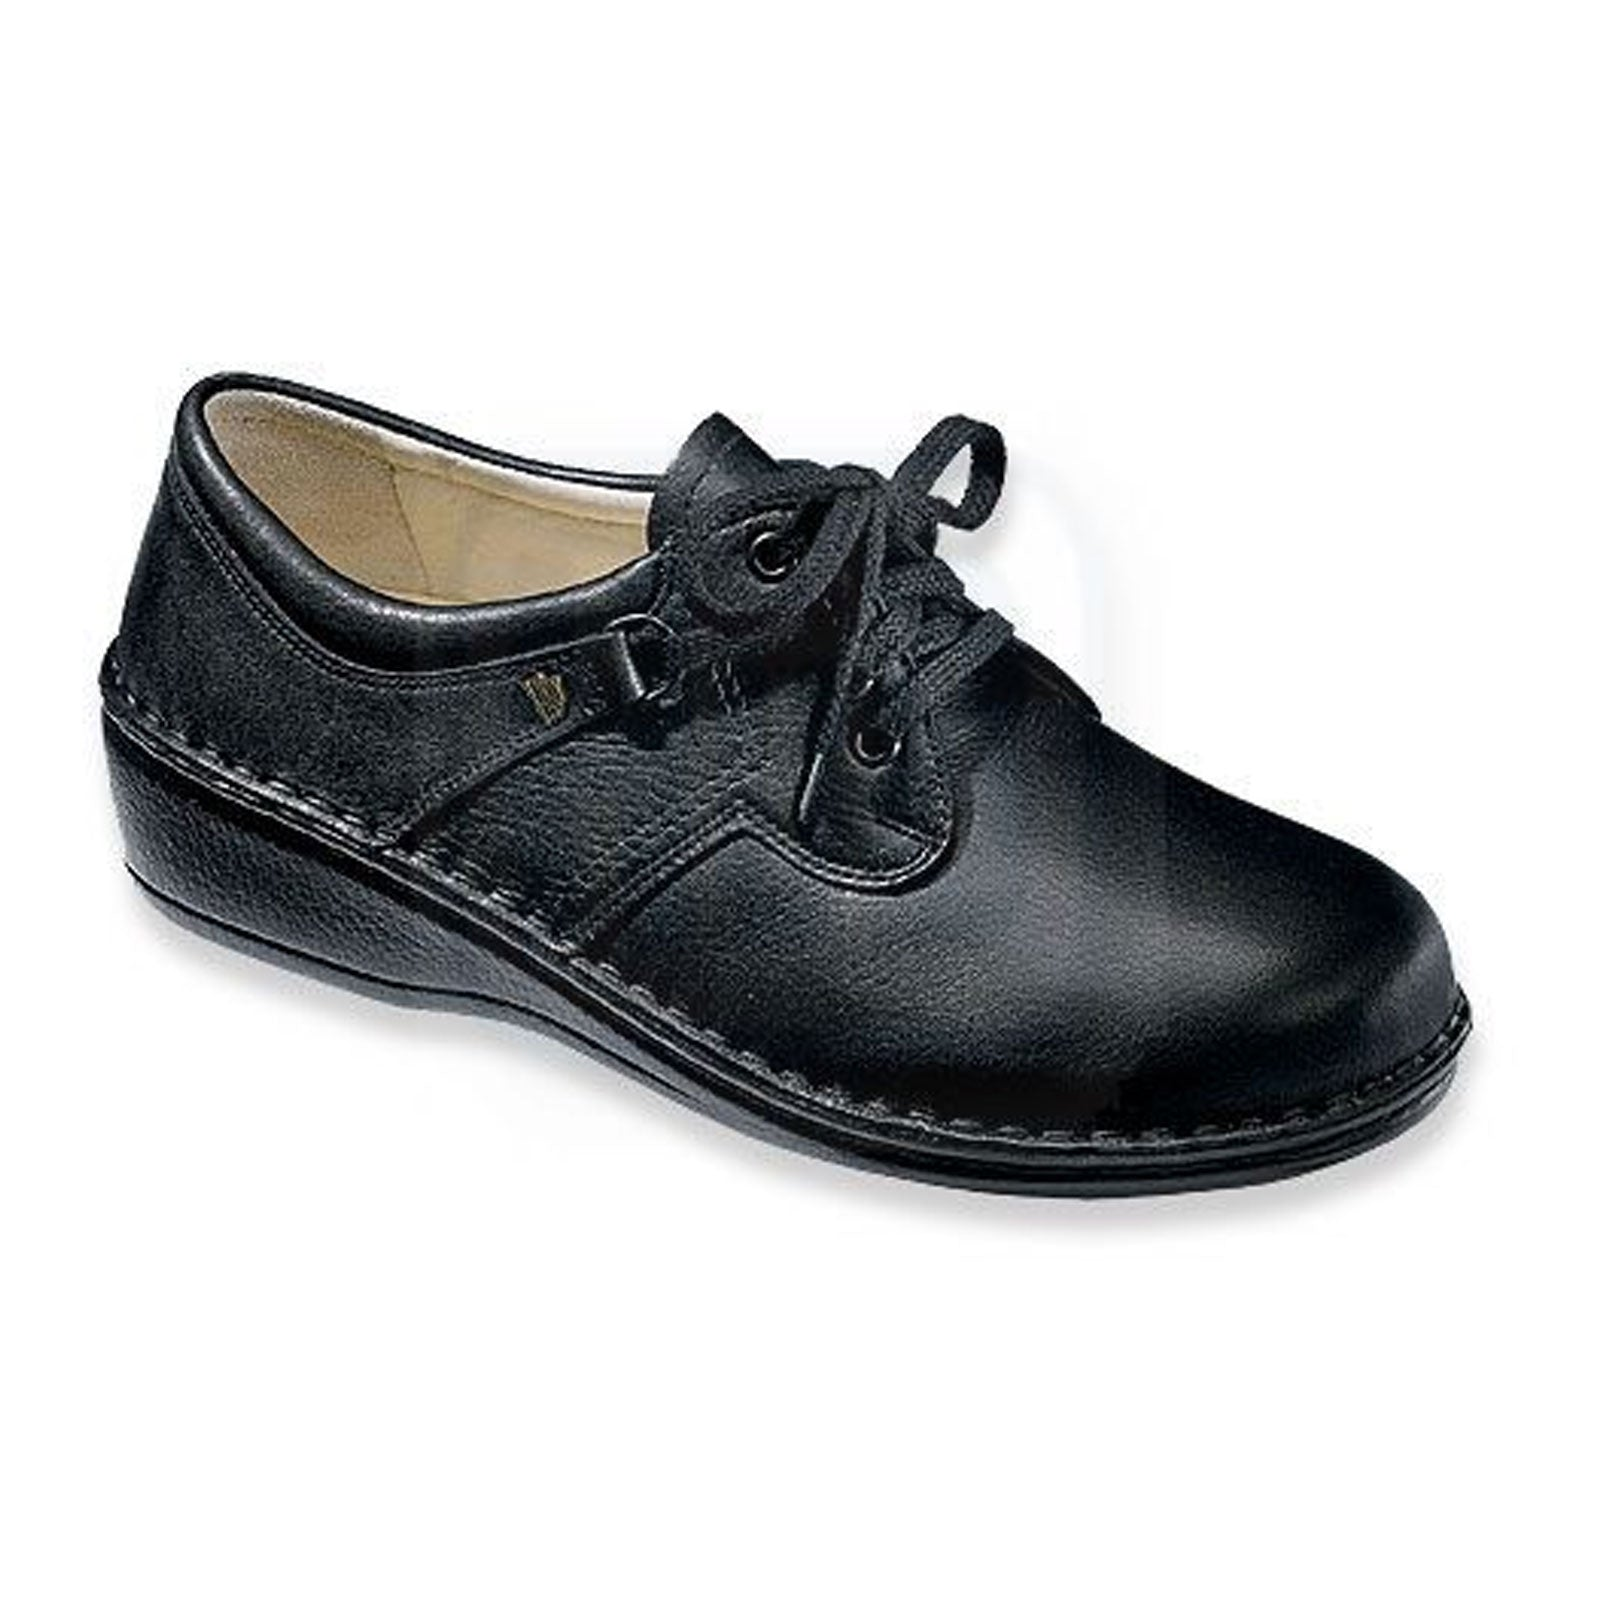 Finn Comfort Soft Prevention (Unisex) - Black Dress/Casual|Lace Ups - The Heel Shoe Fitters